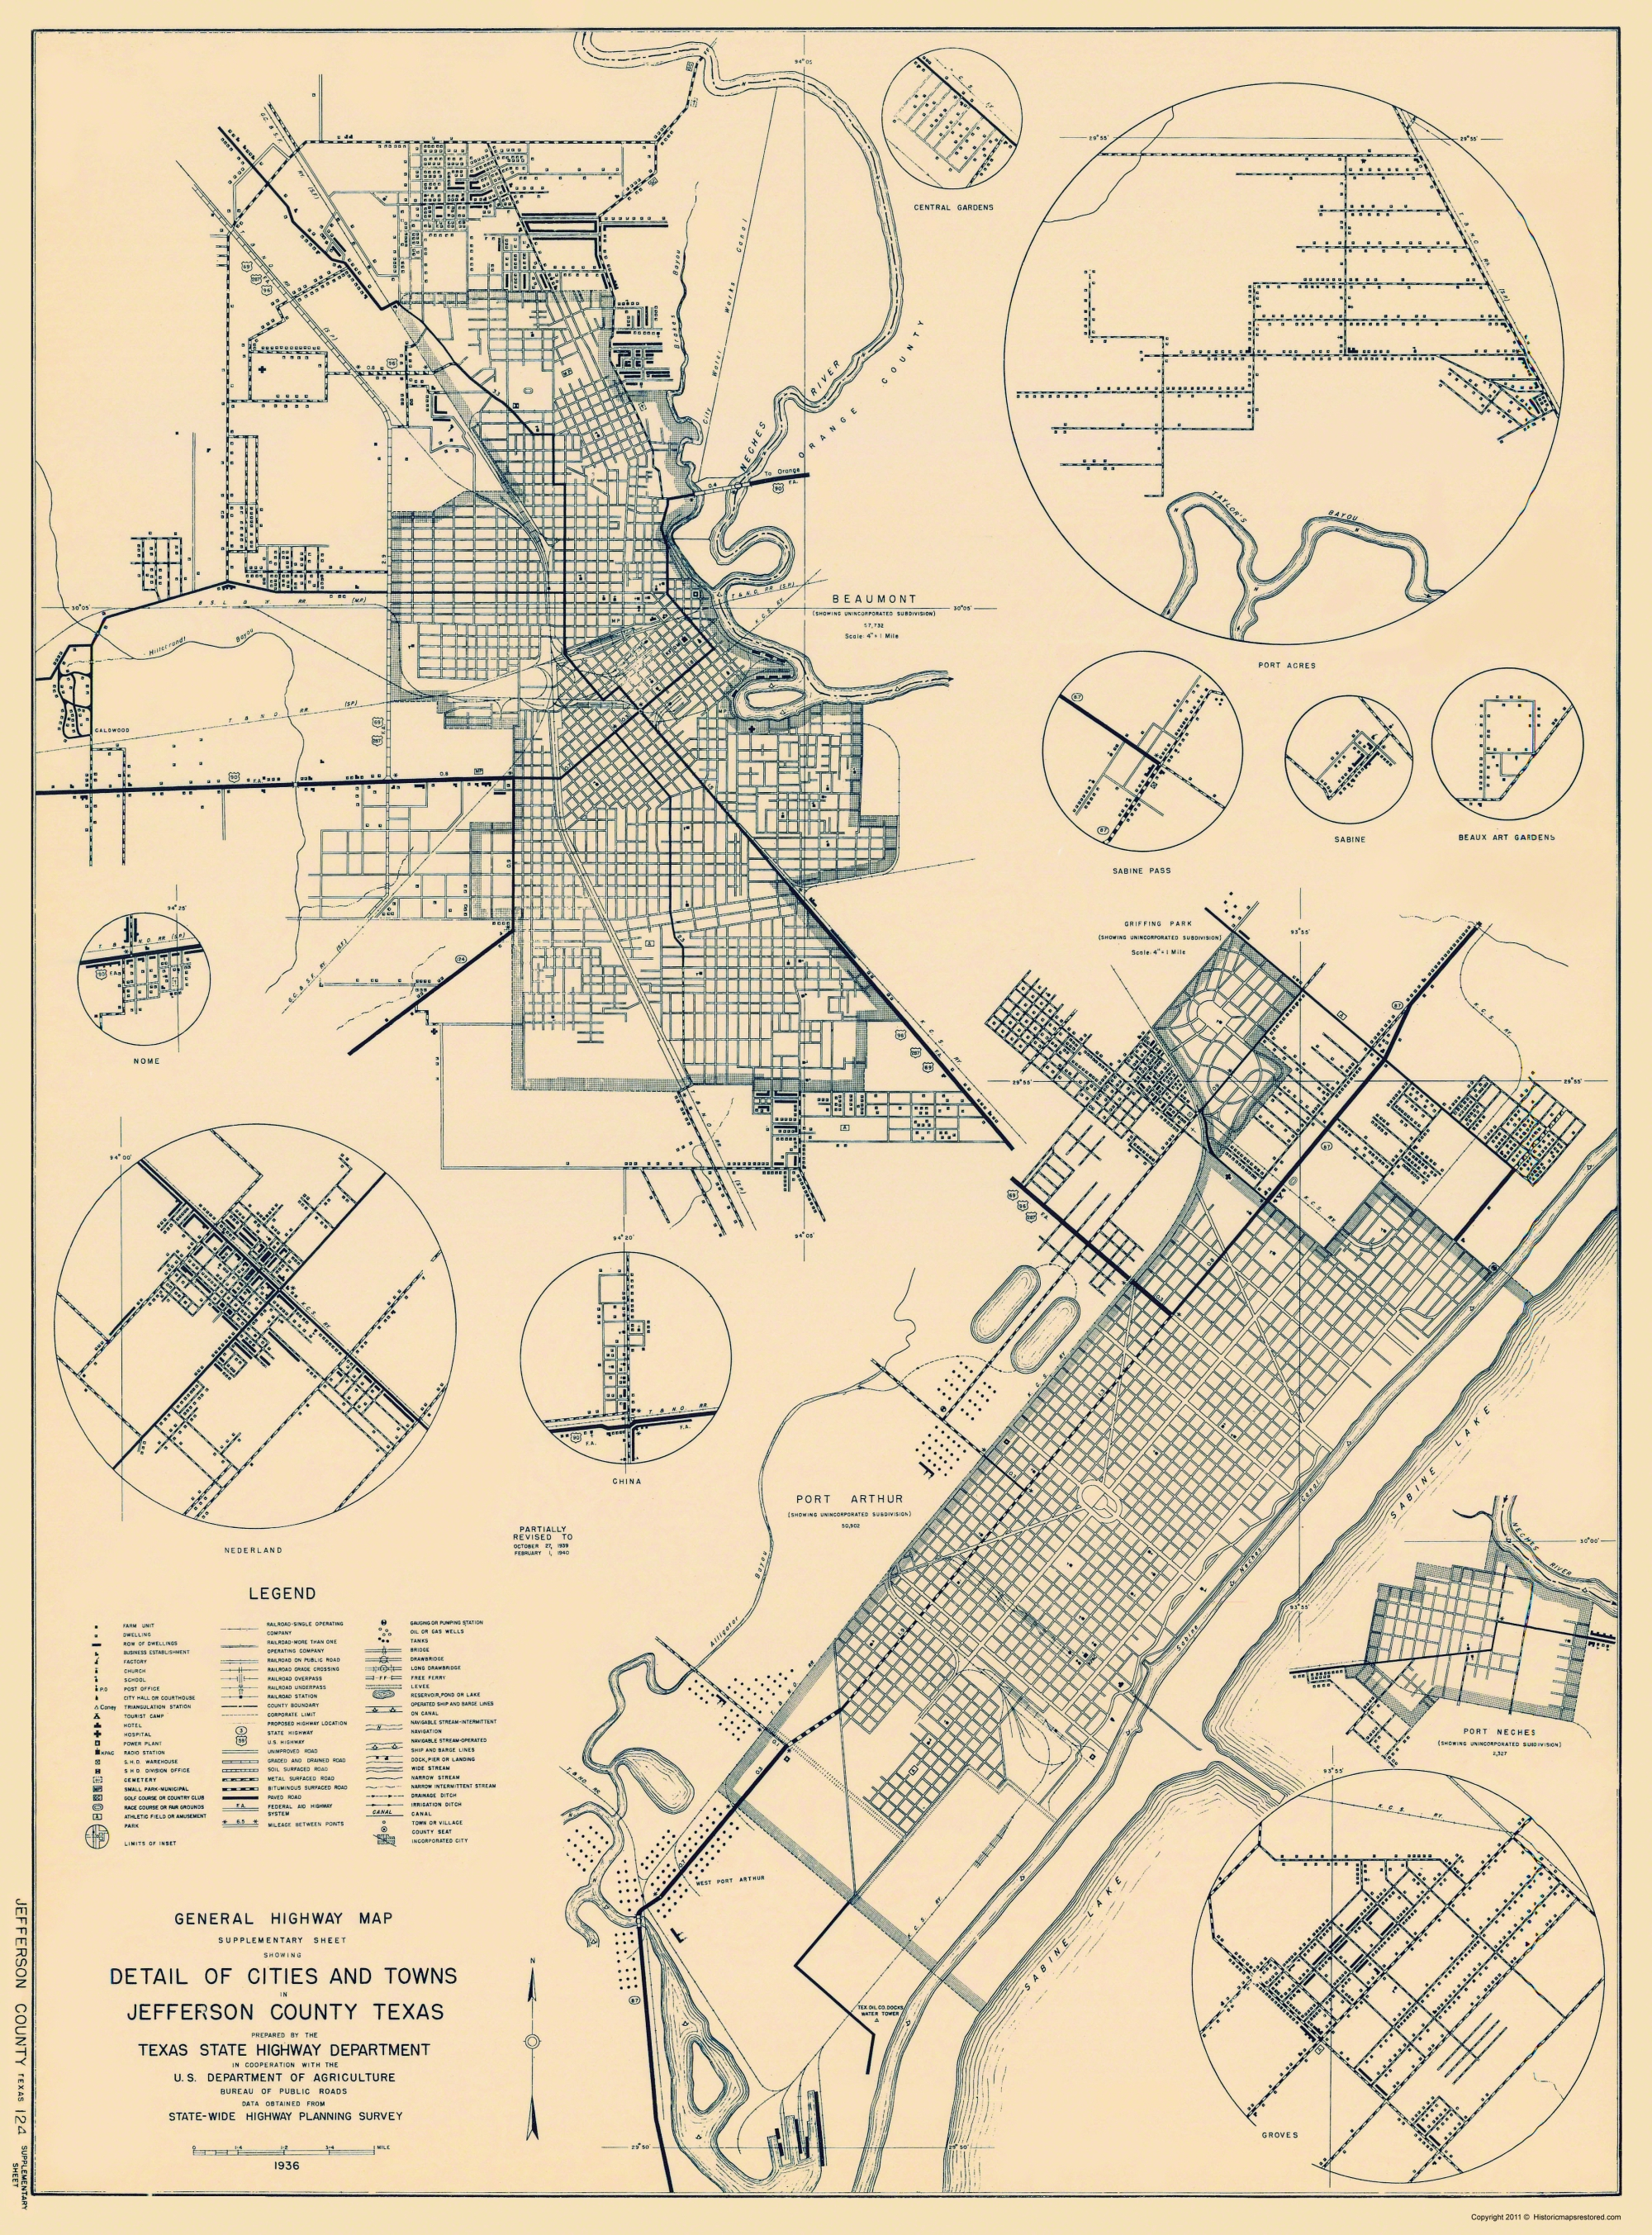 Map Of Beaumont Texas.Old County Map Jefferson Texas Highway Dept 1936